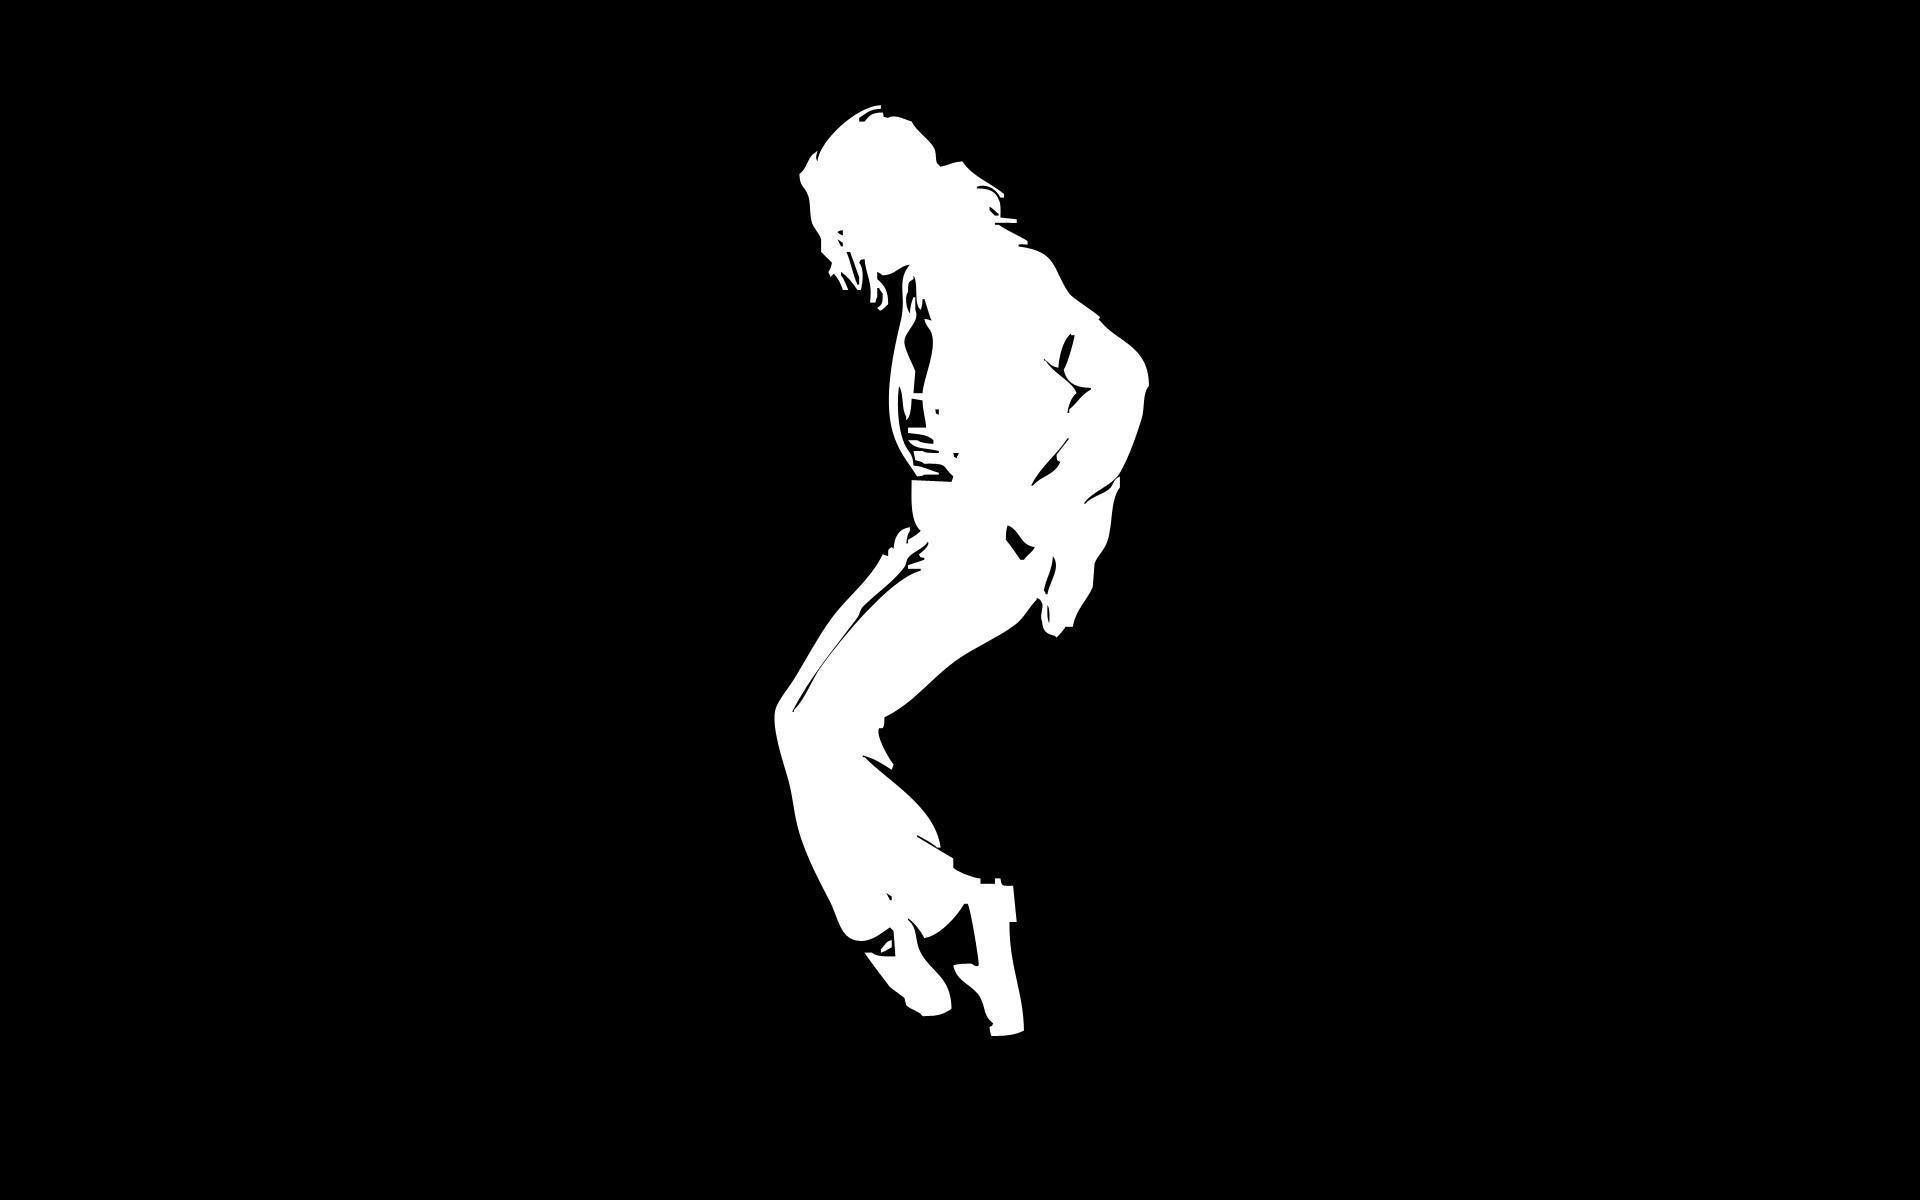 Michael Jackson Wallpaper - MixHD wallpapers